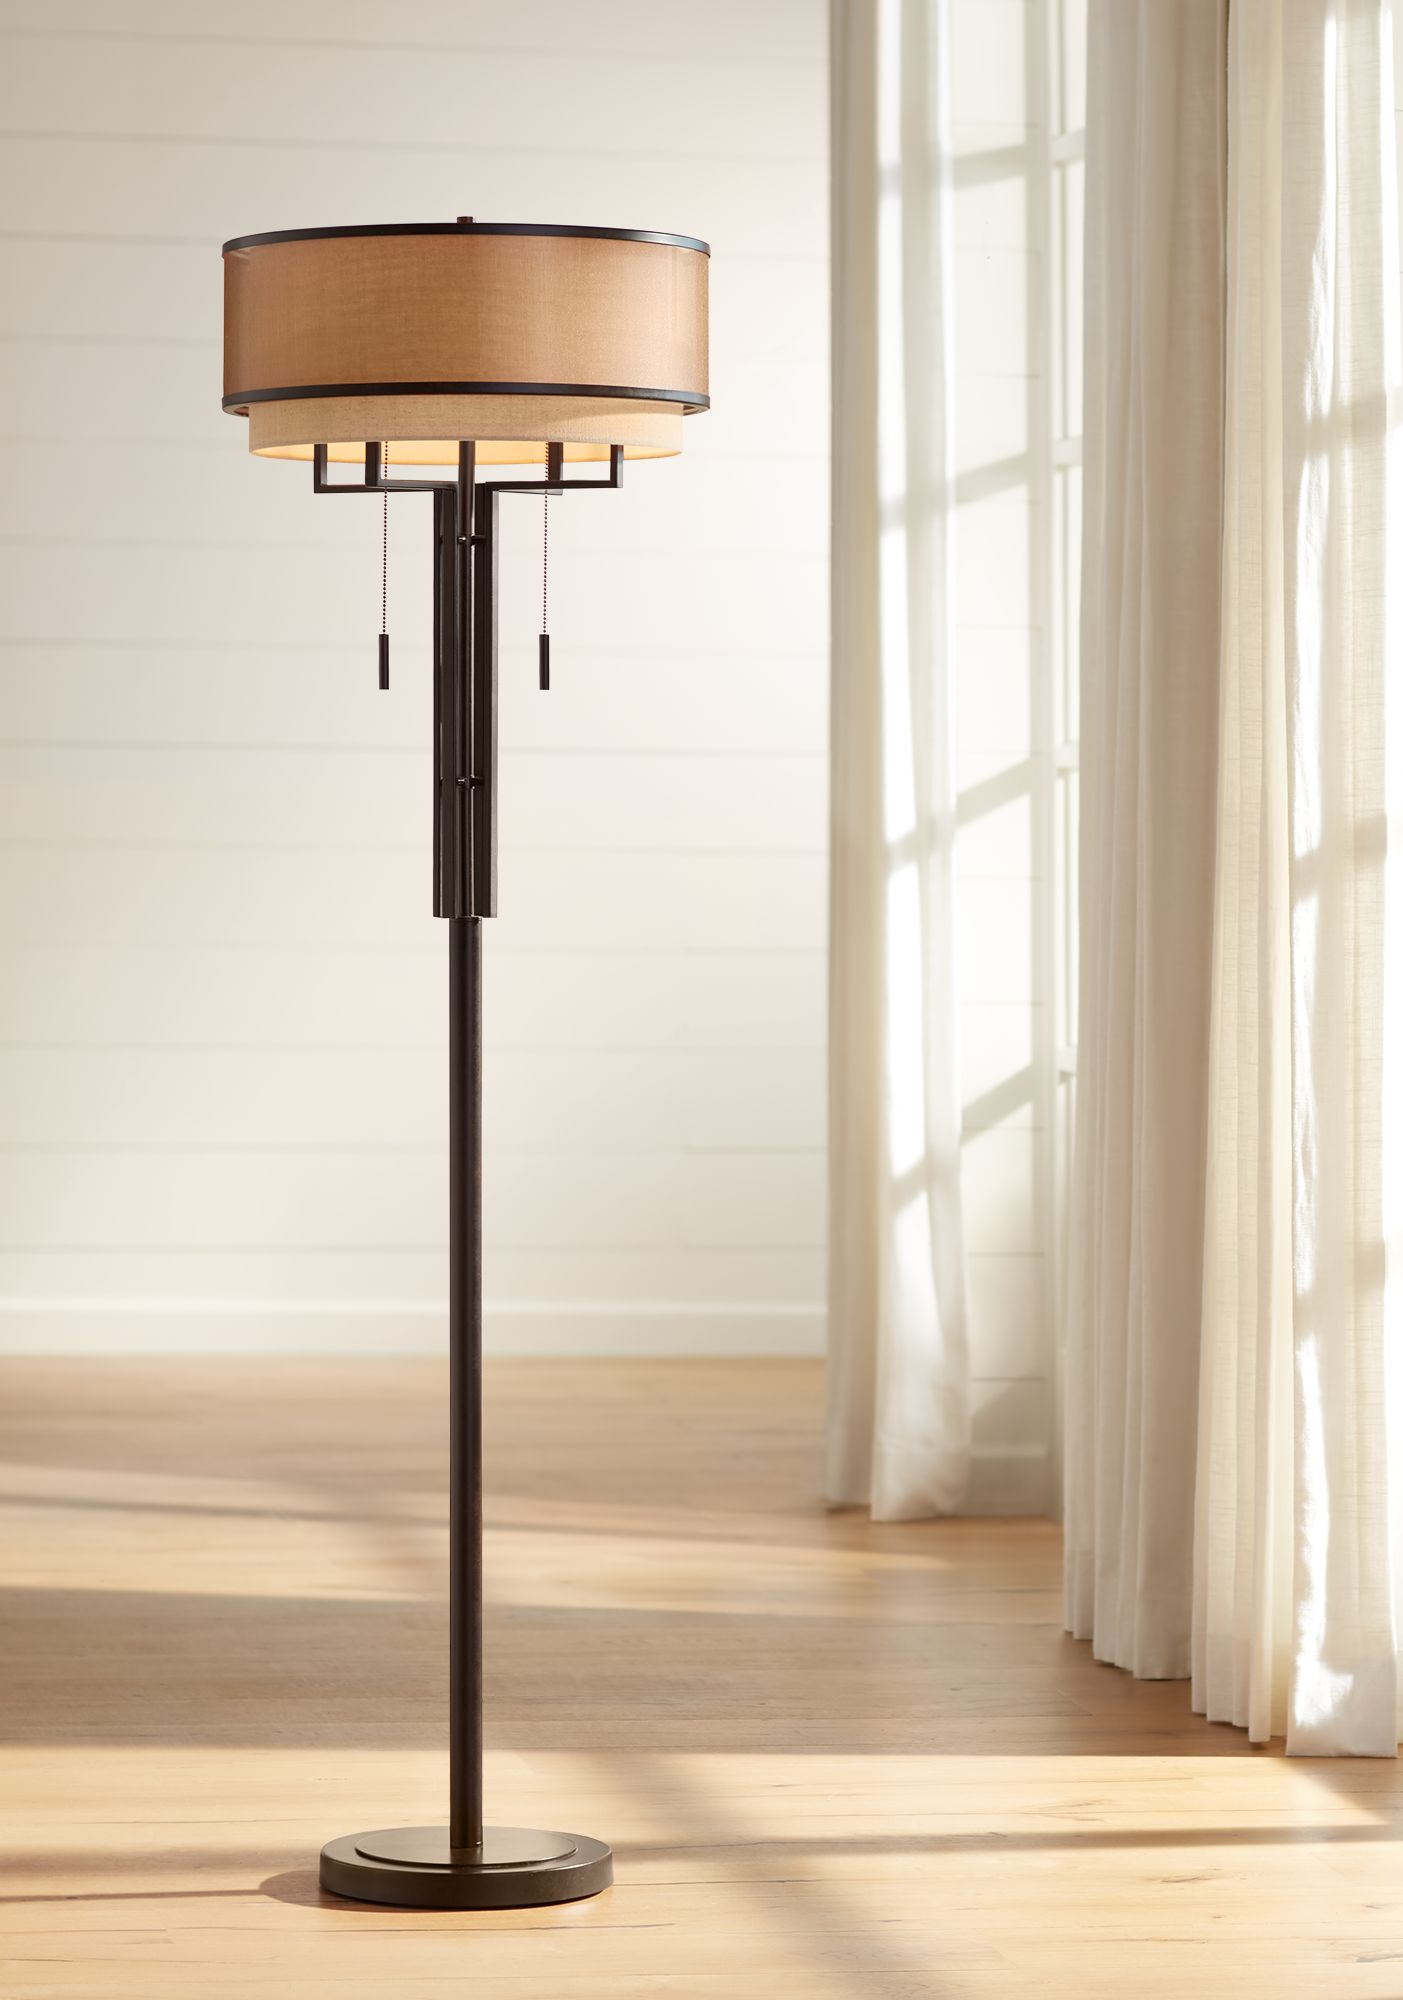 High Quality Franklin Iron Works Alamo Floor Lamp With Double Shade